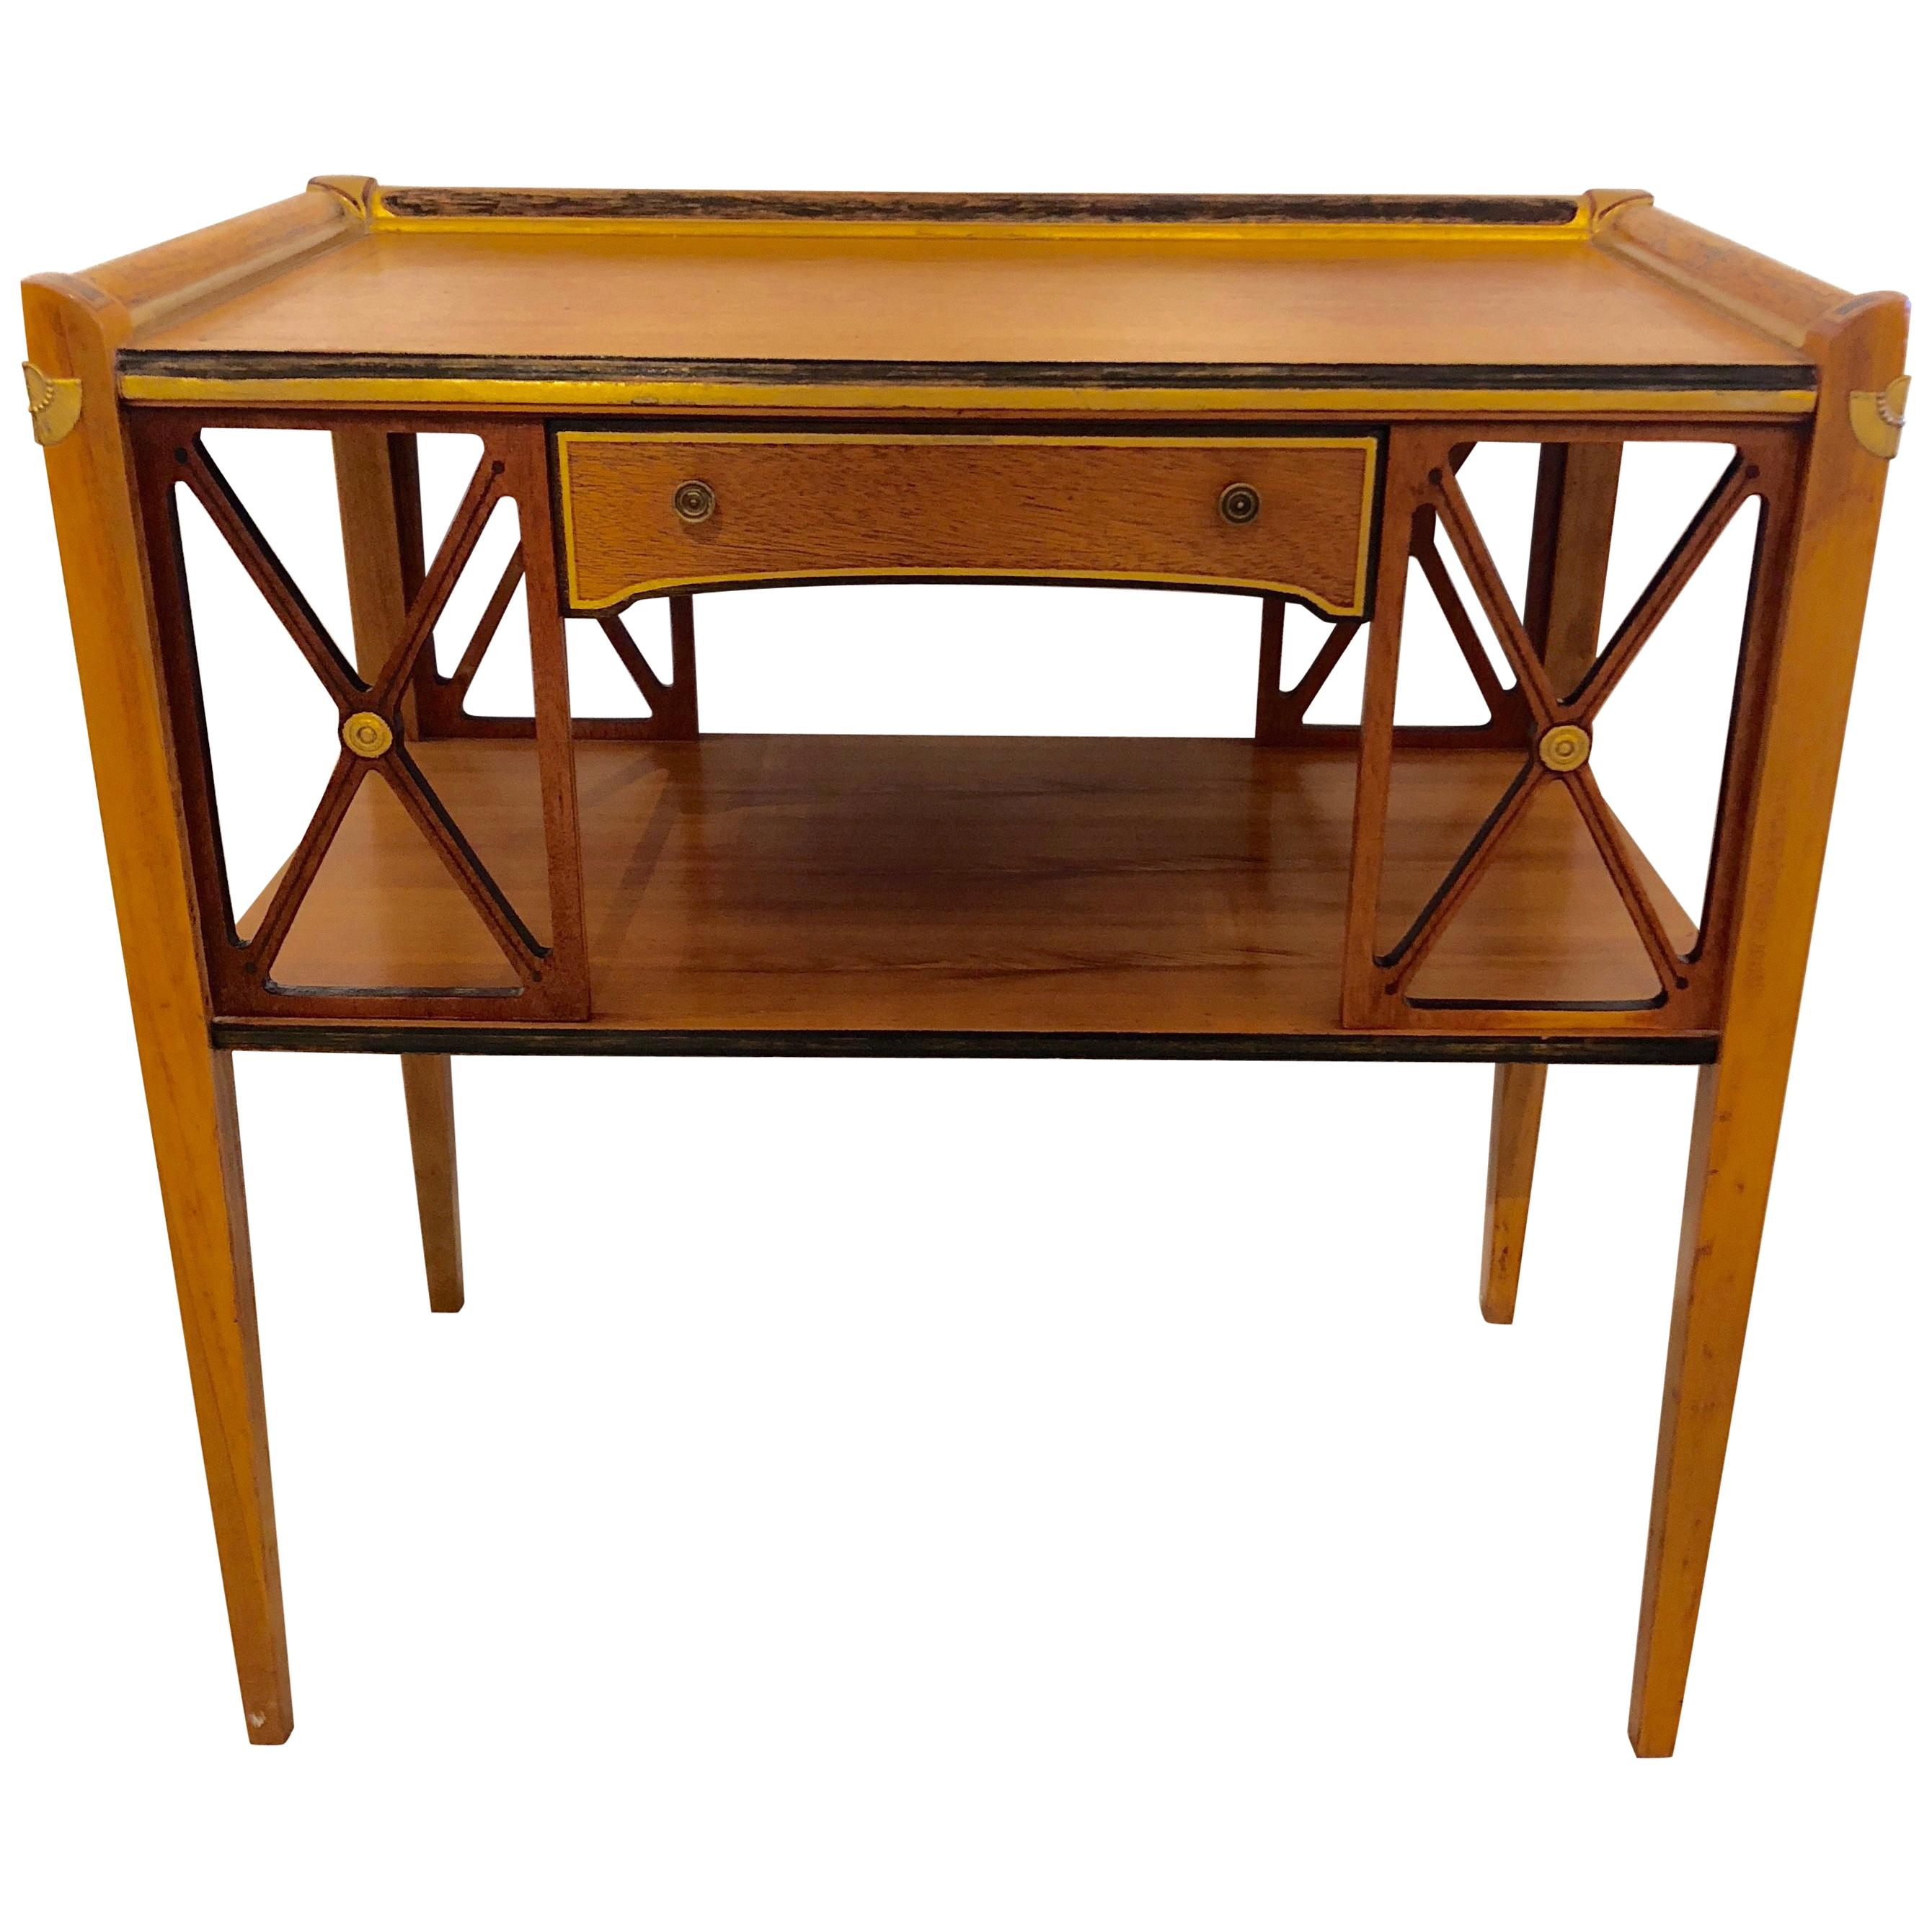 Charming Neoclassical Style Side Table with Drawer